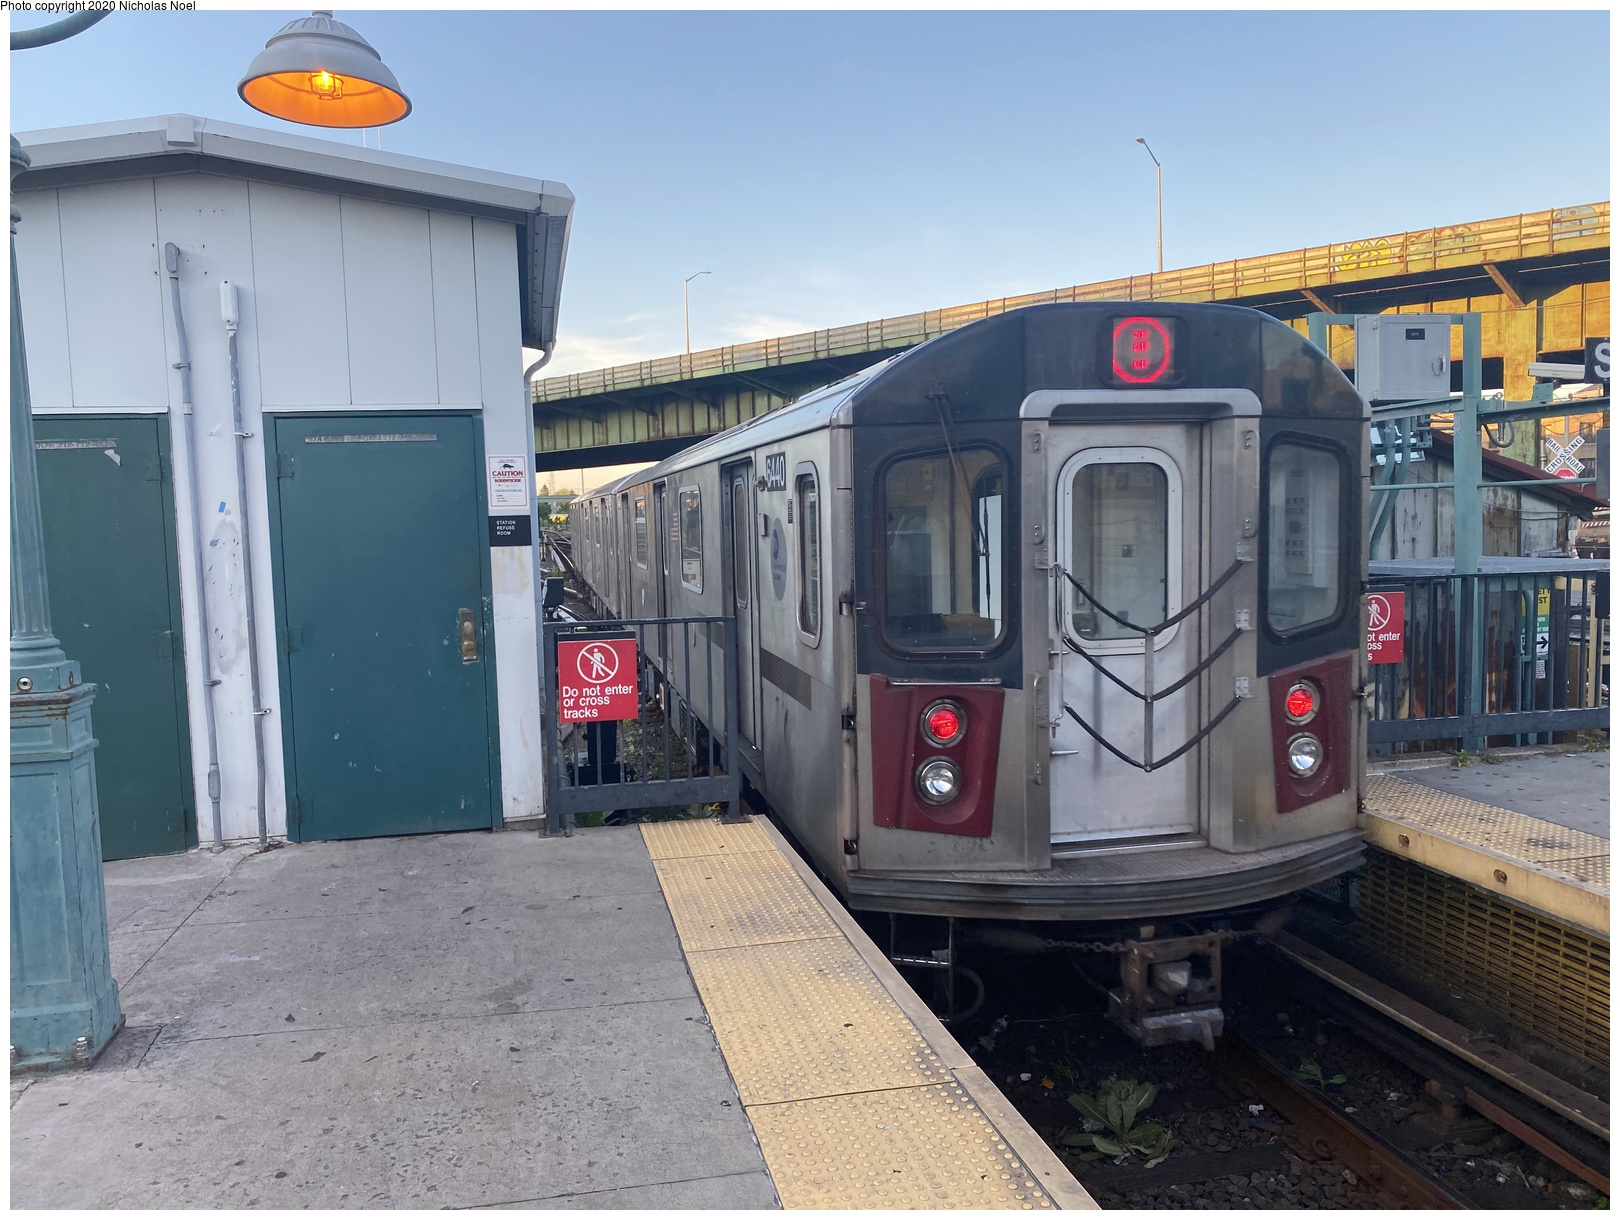 (190k, 1044x727)<br><b>Country:</b> United States<br><b>City:</b> New York<br><b>System:</b> New York City Transit<br><b>Line:</b> BMT Nassau Street/Jamaica Line<br><b>Location:</b> Broadway/East New York (Broadway Junction) <br><b>Route:</b> Work Service<br><b>Car:</b> BMT Elevated Gate Car  <br><b>Photo by:</b> Joel Shanus<br><b>Notes:</b> BU 1300 series Gate cars with flat car in middle in work service, circa 1954.<br><b>Viewed (this week/total):</b> 1 / 1903